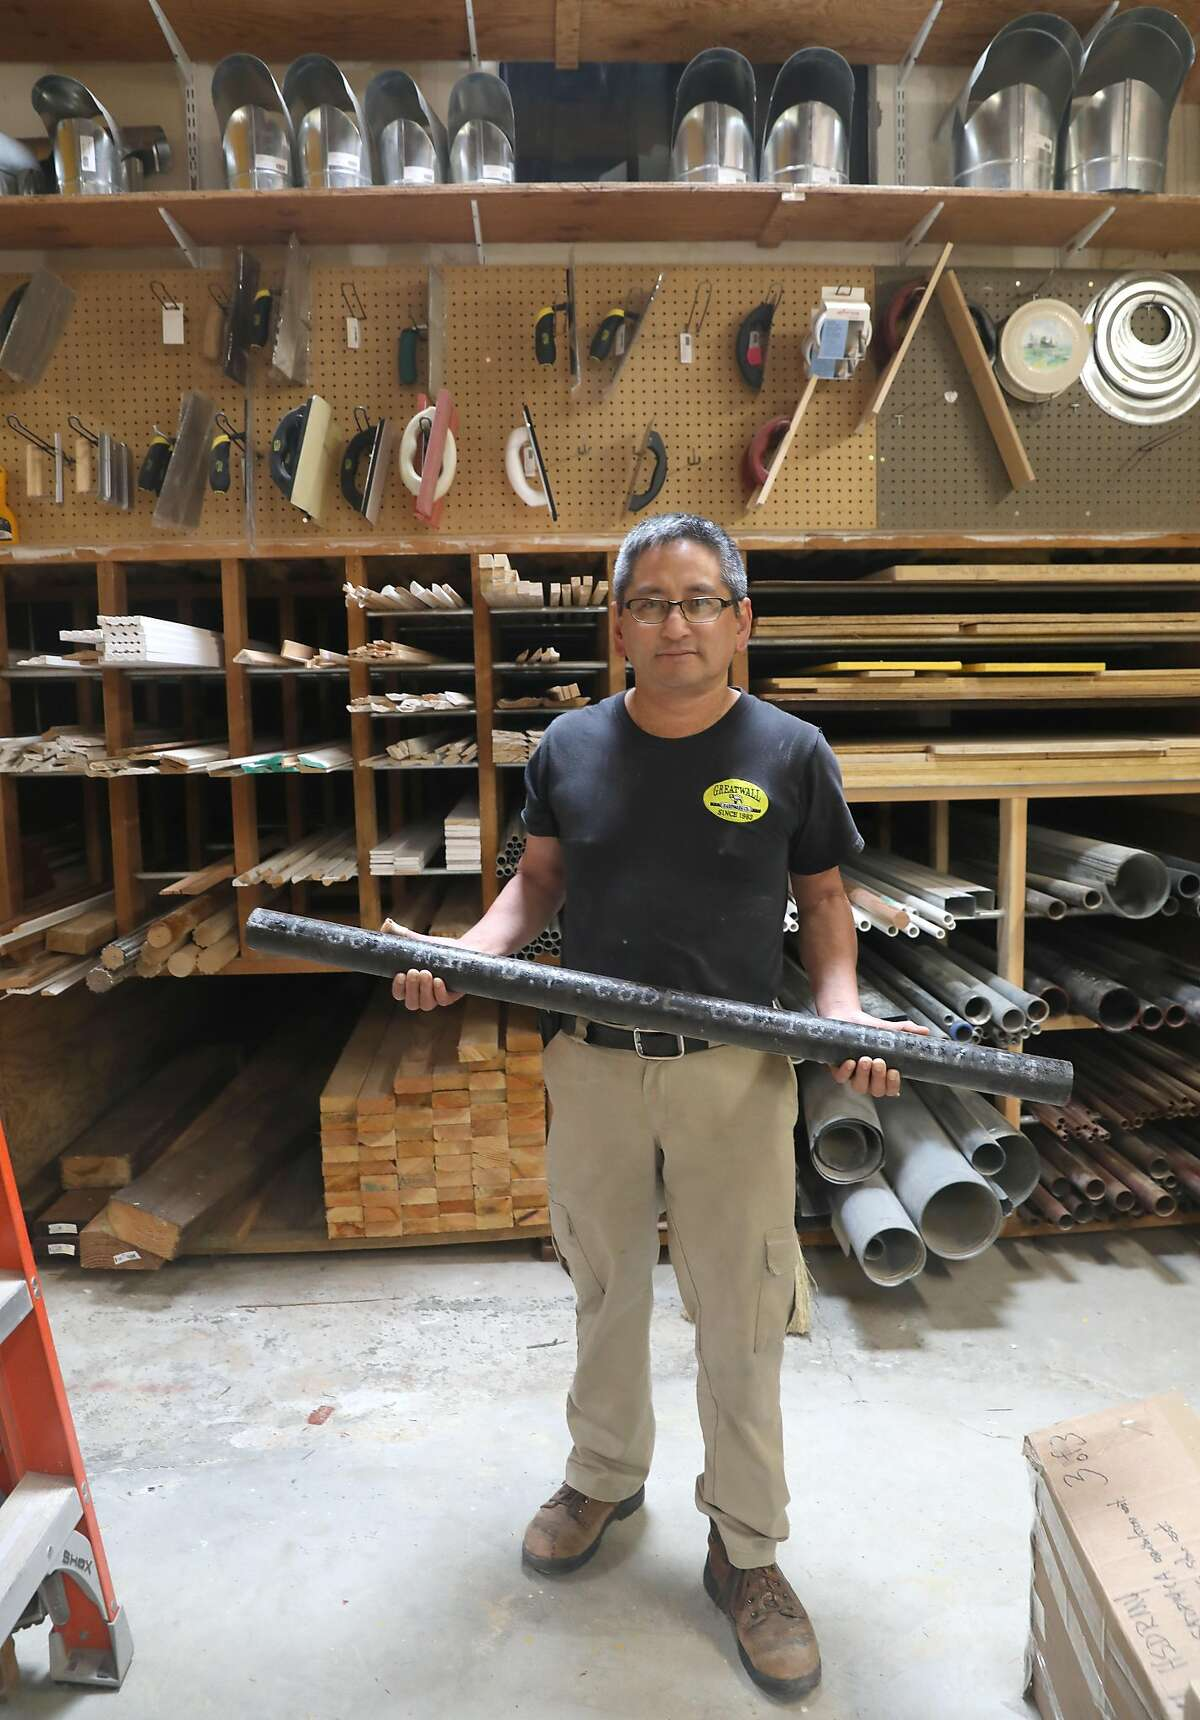 Owner Albert Chow shows a cast iron pipe from china which he originally buys for 21$ dollars which he sells for 31$ dollars at Great Wall hardware store that he and his family owned since 1983 on Thursday, Aug. 8, 2019 in San Francisco, Calif. He now must buy the pipe for 31$ dollars because of china tariffs.